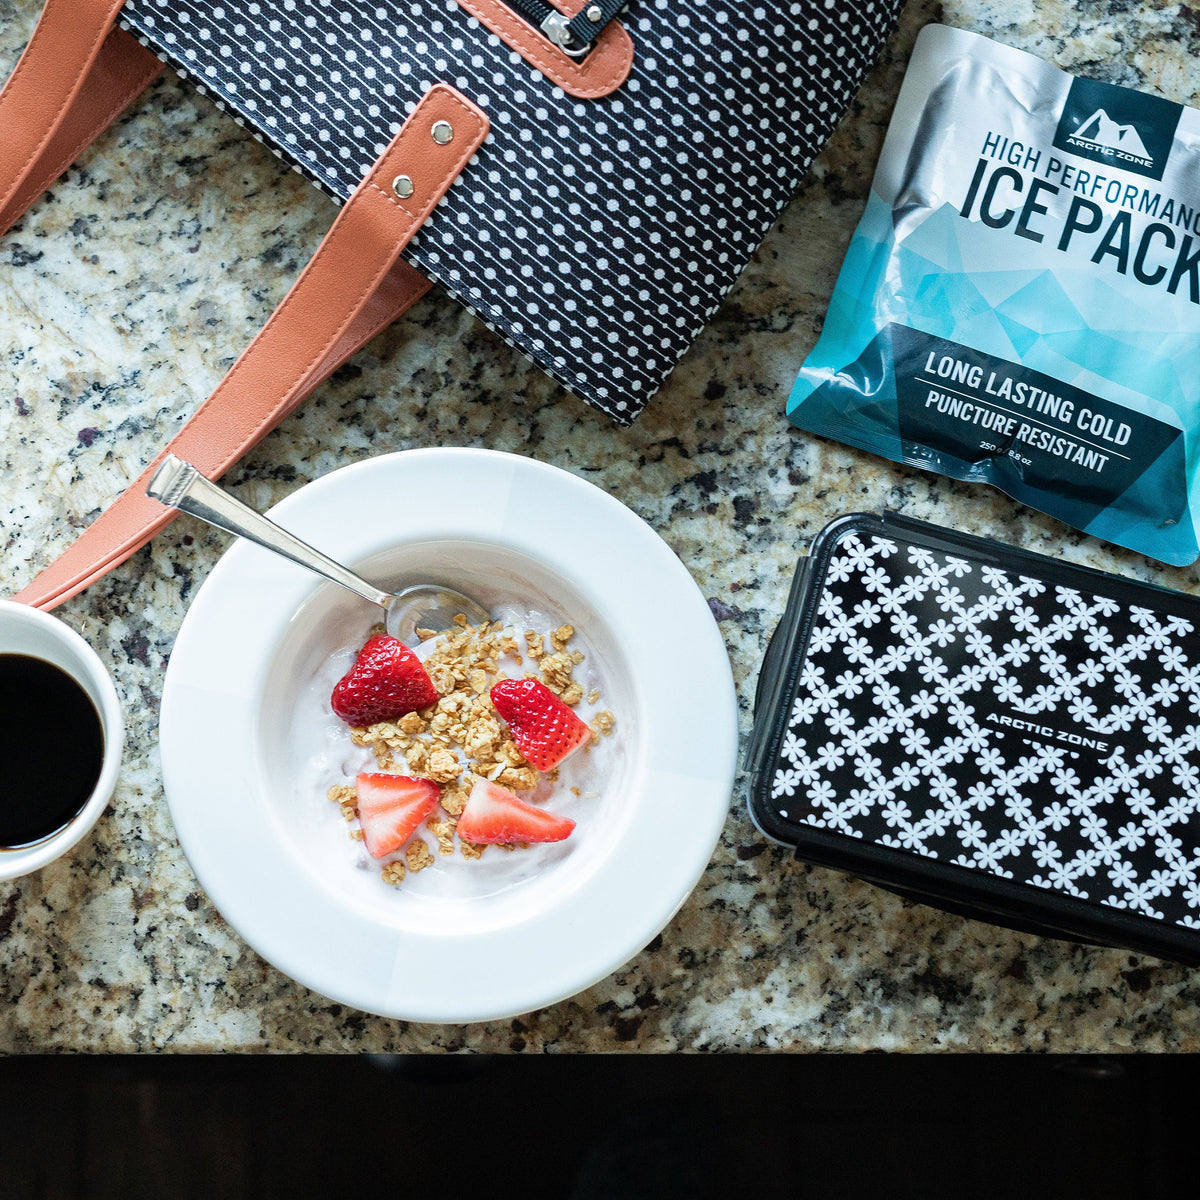 Arctic Zone® Bennet Tote - Dot Strike - Lifestyle, Having breakfast while fixing up lunch